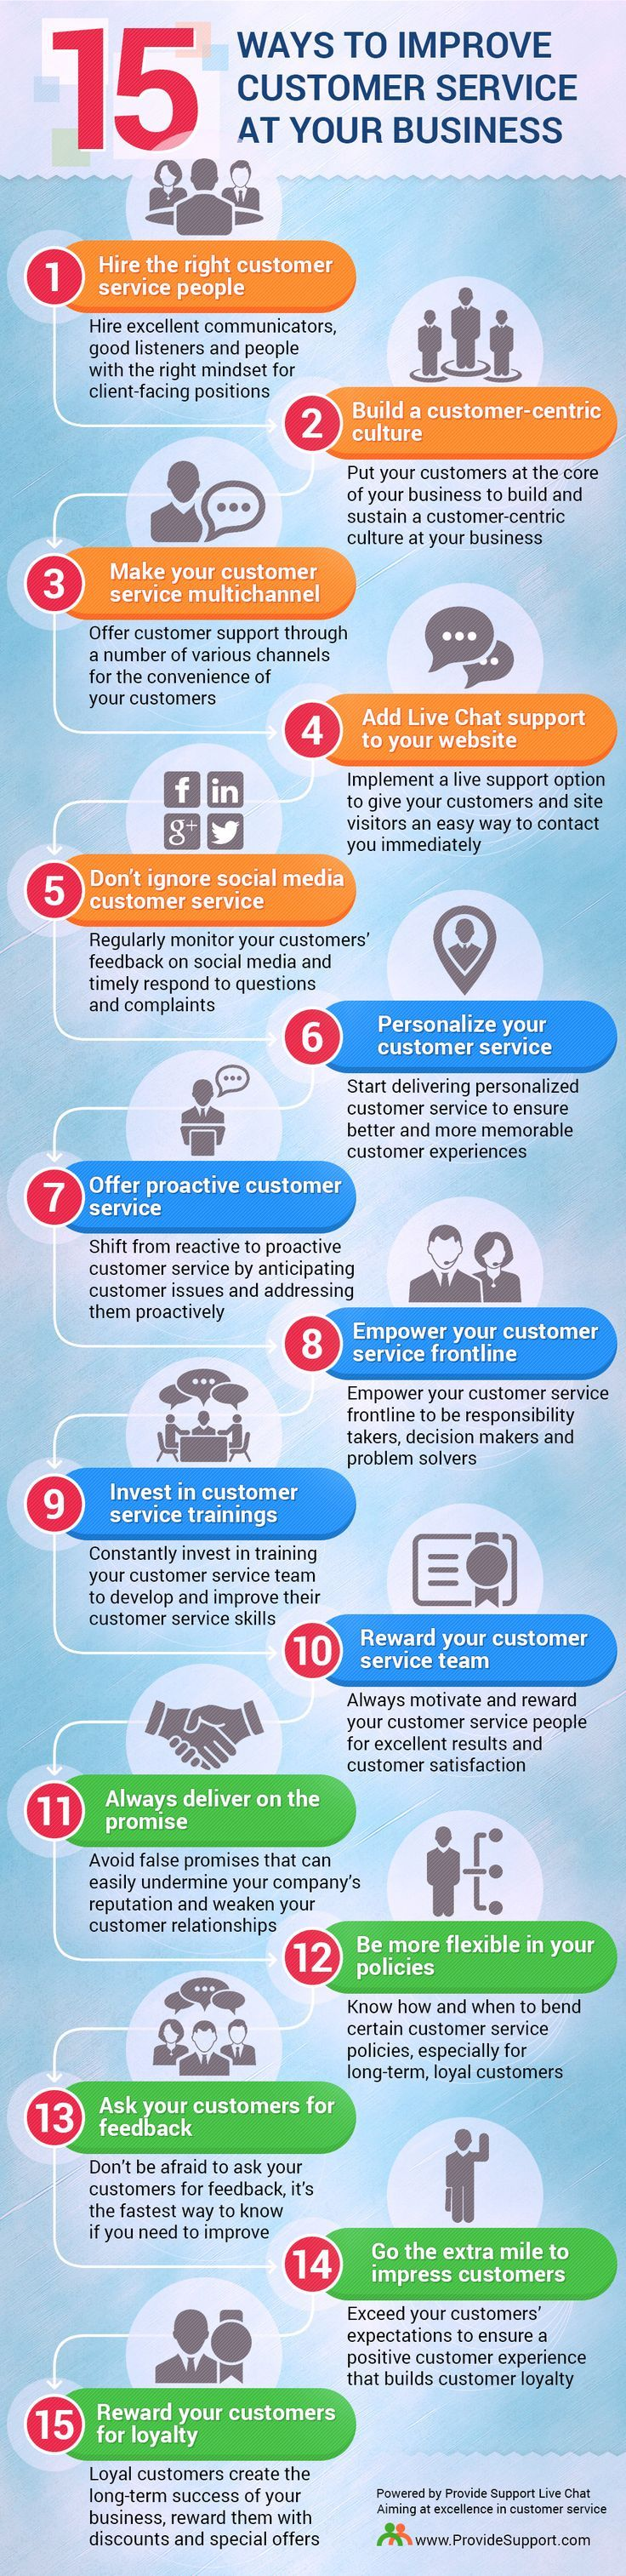 15 Ways to Improve Customer Service at Your Business [Inforgraphic from Provide Support]